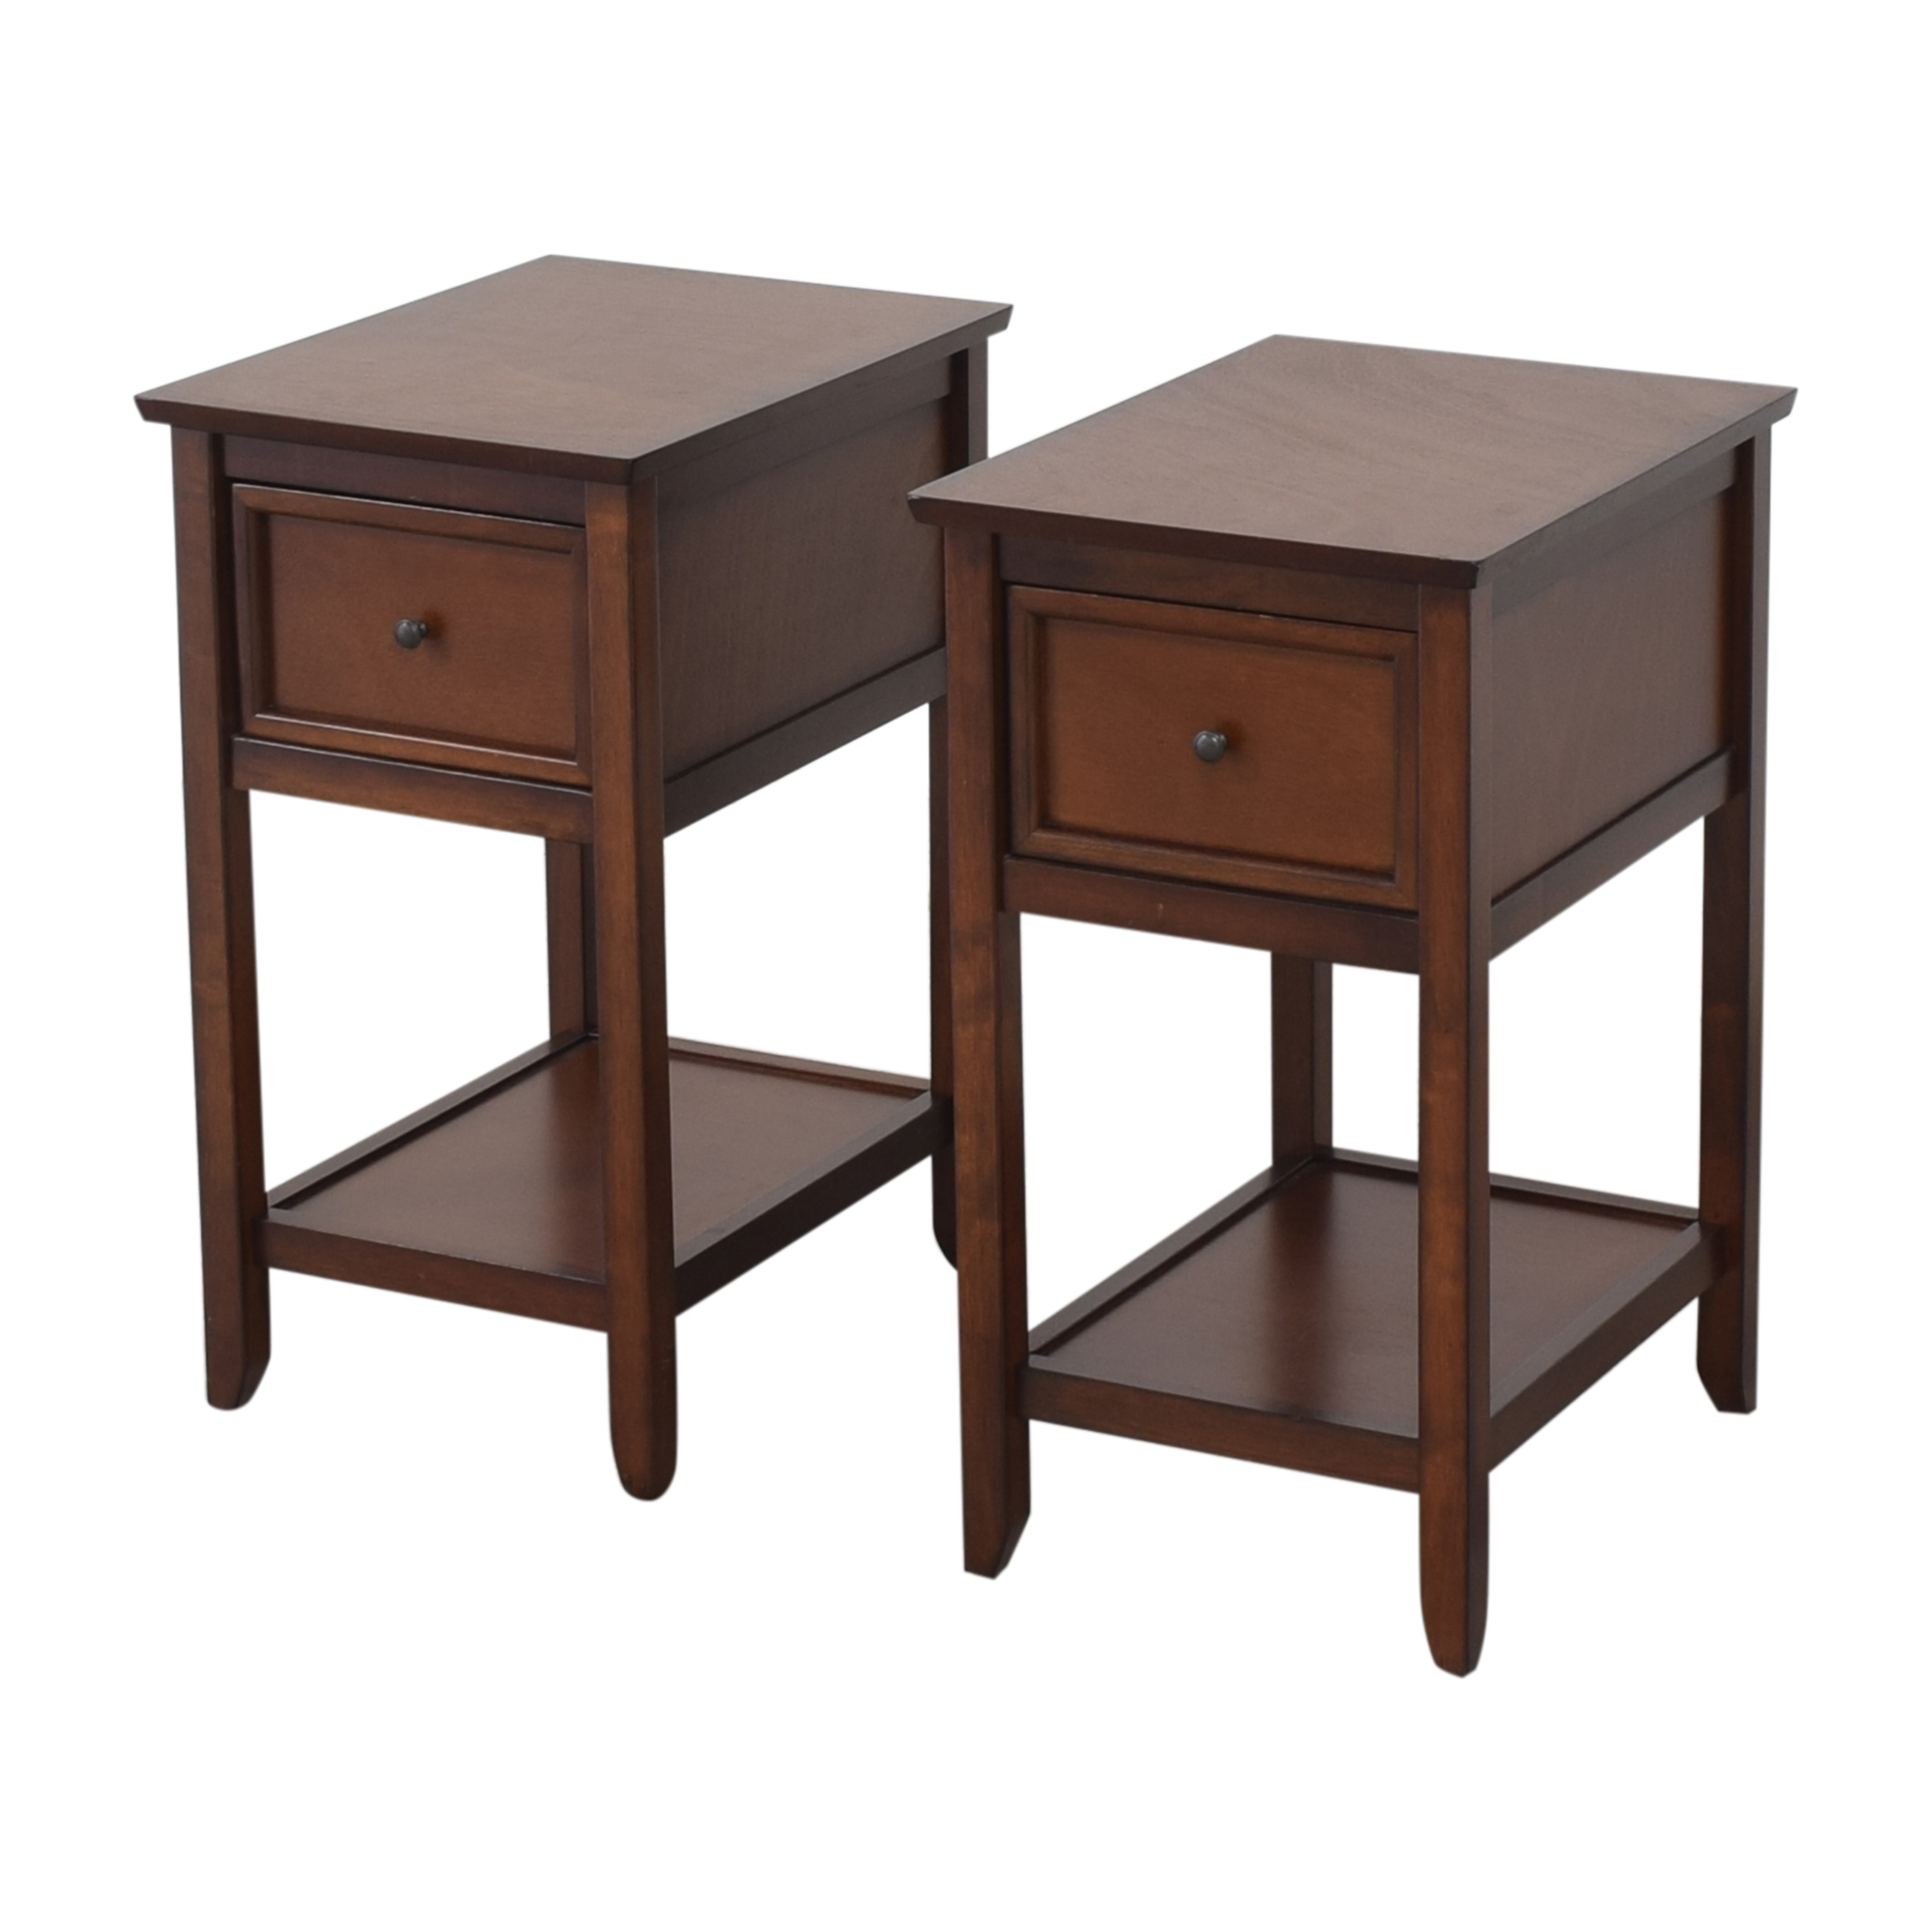 Pier 1 Pier 1 End Tables used